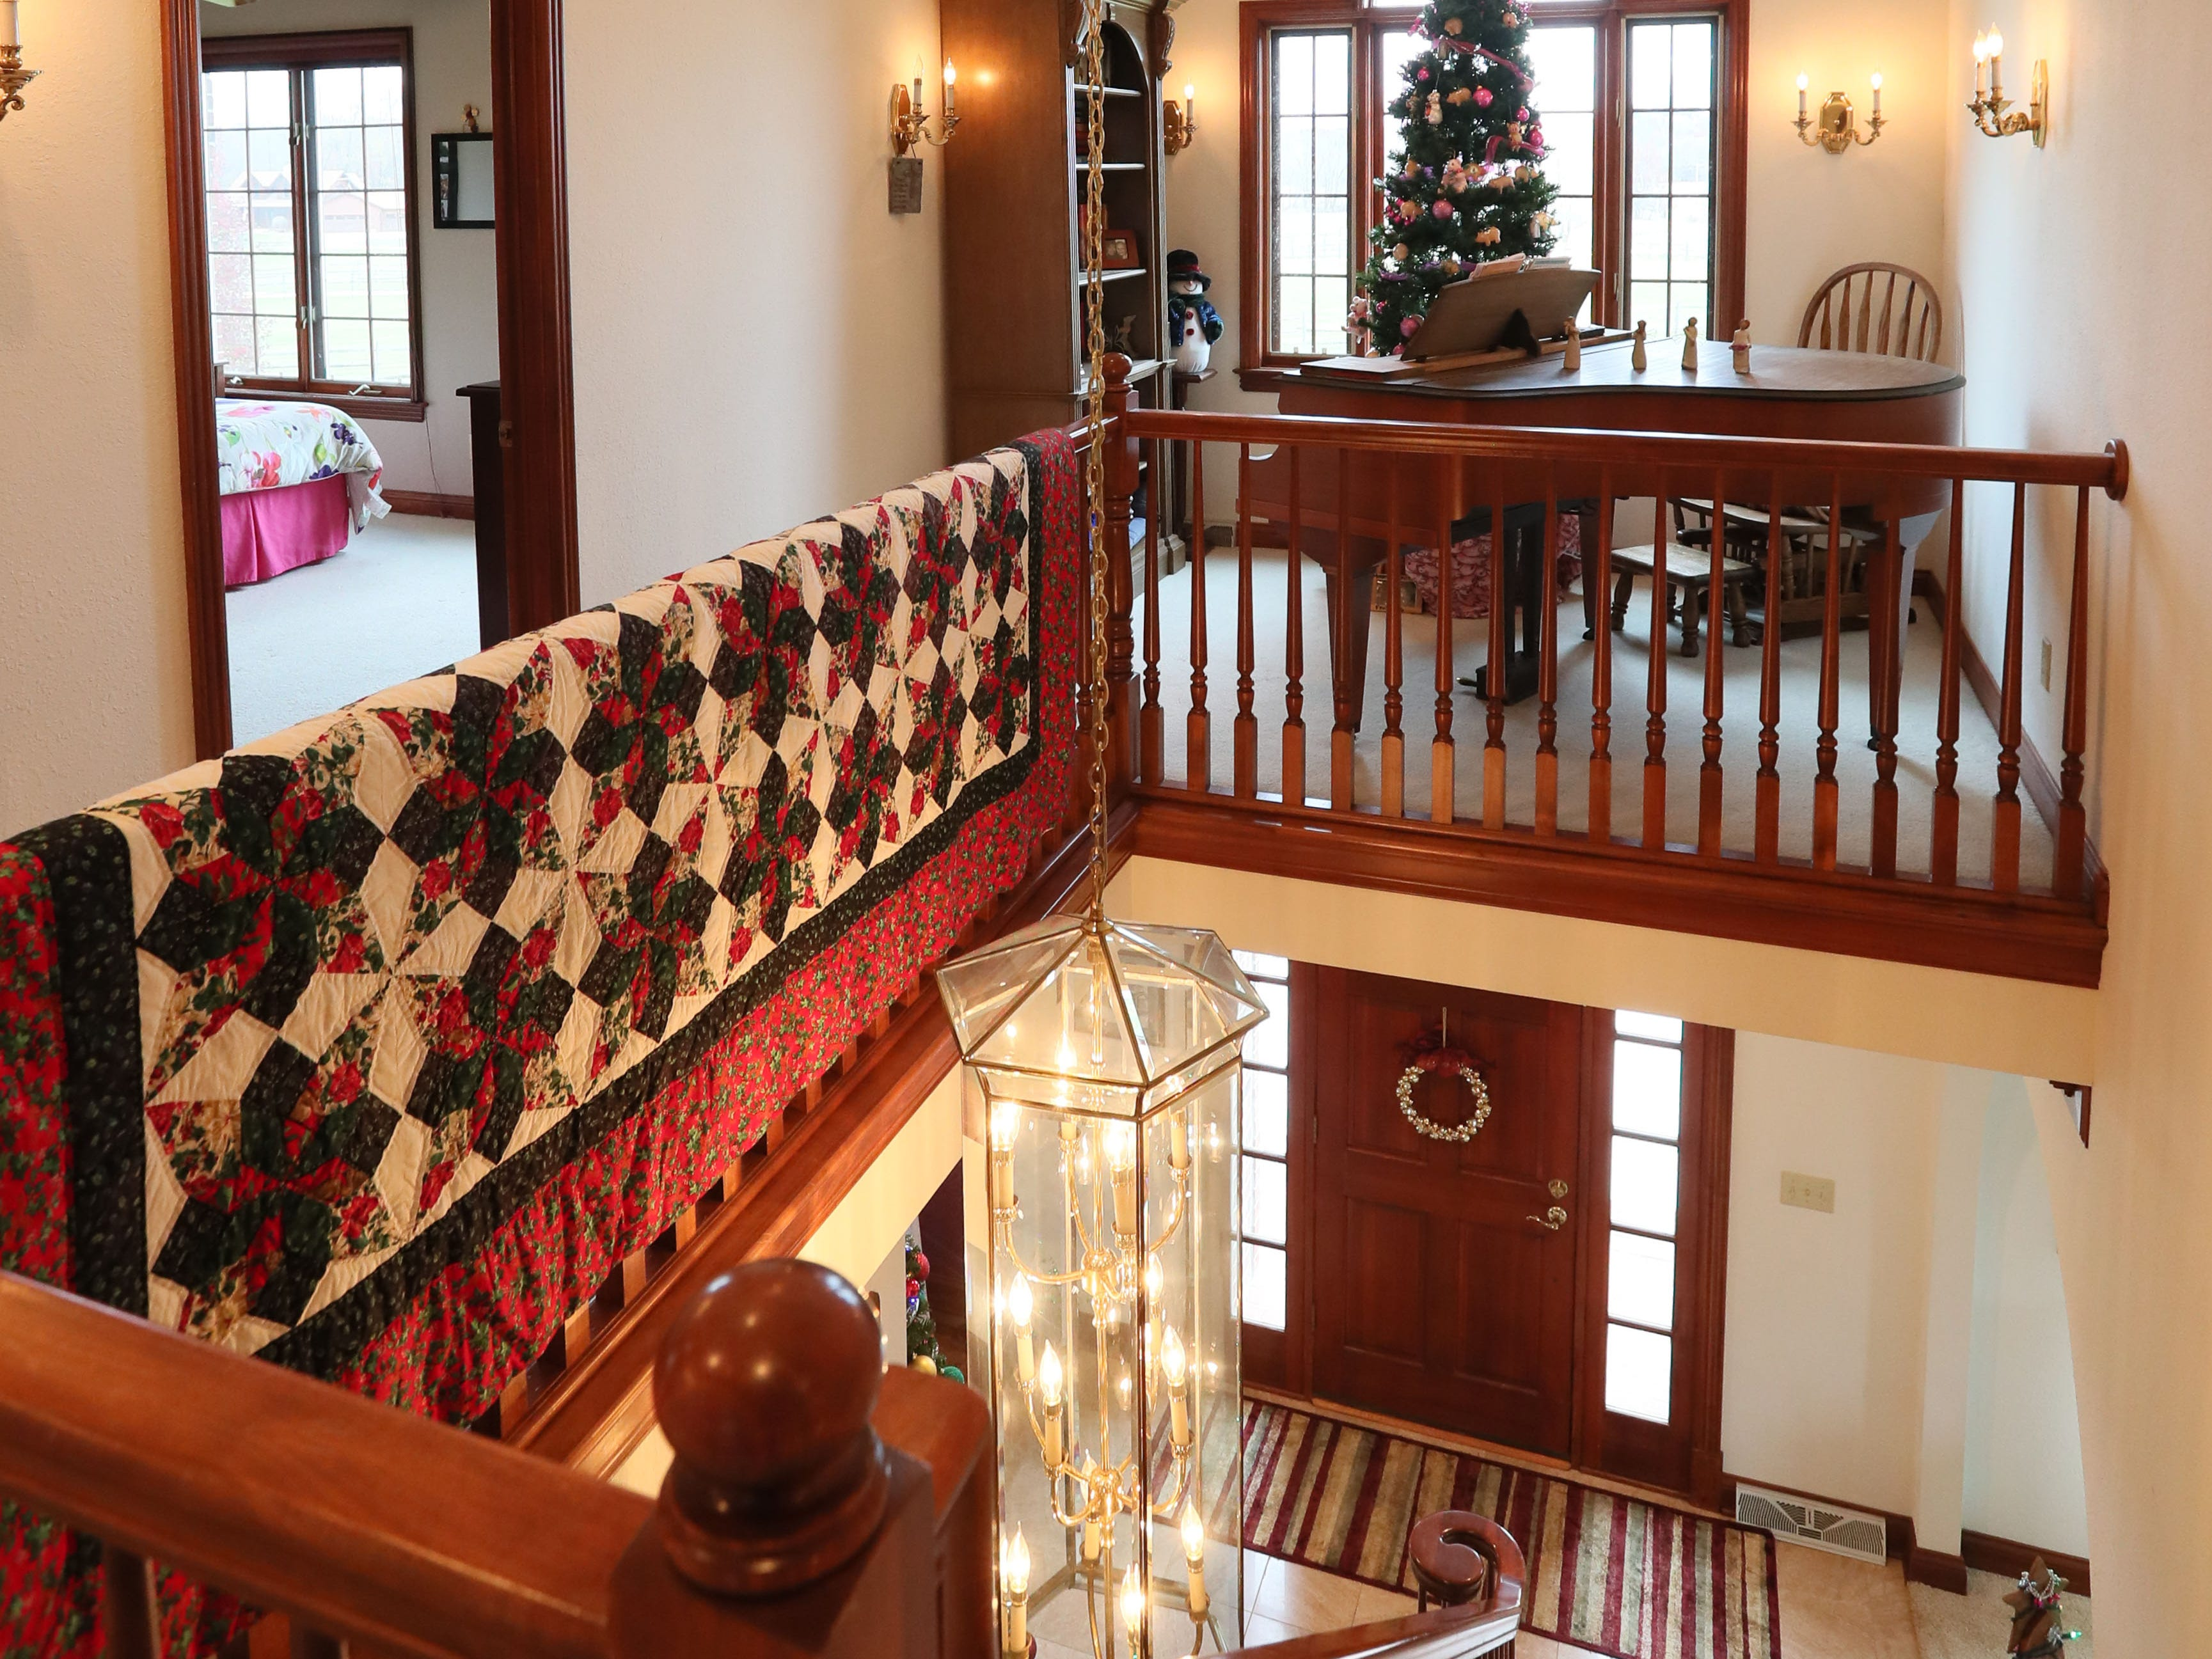 The quilt she hangs over the railing is one of Janet Libbey's favorite holiday accent pieces.